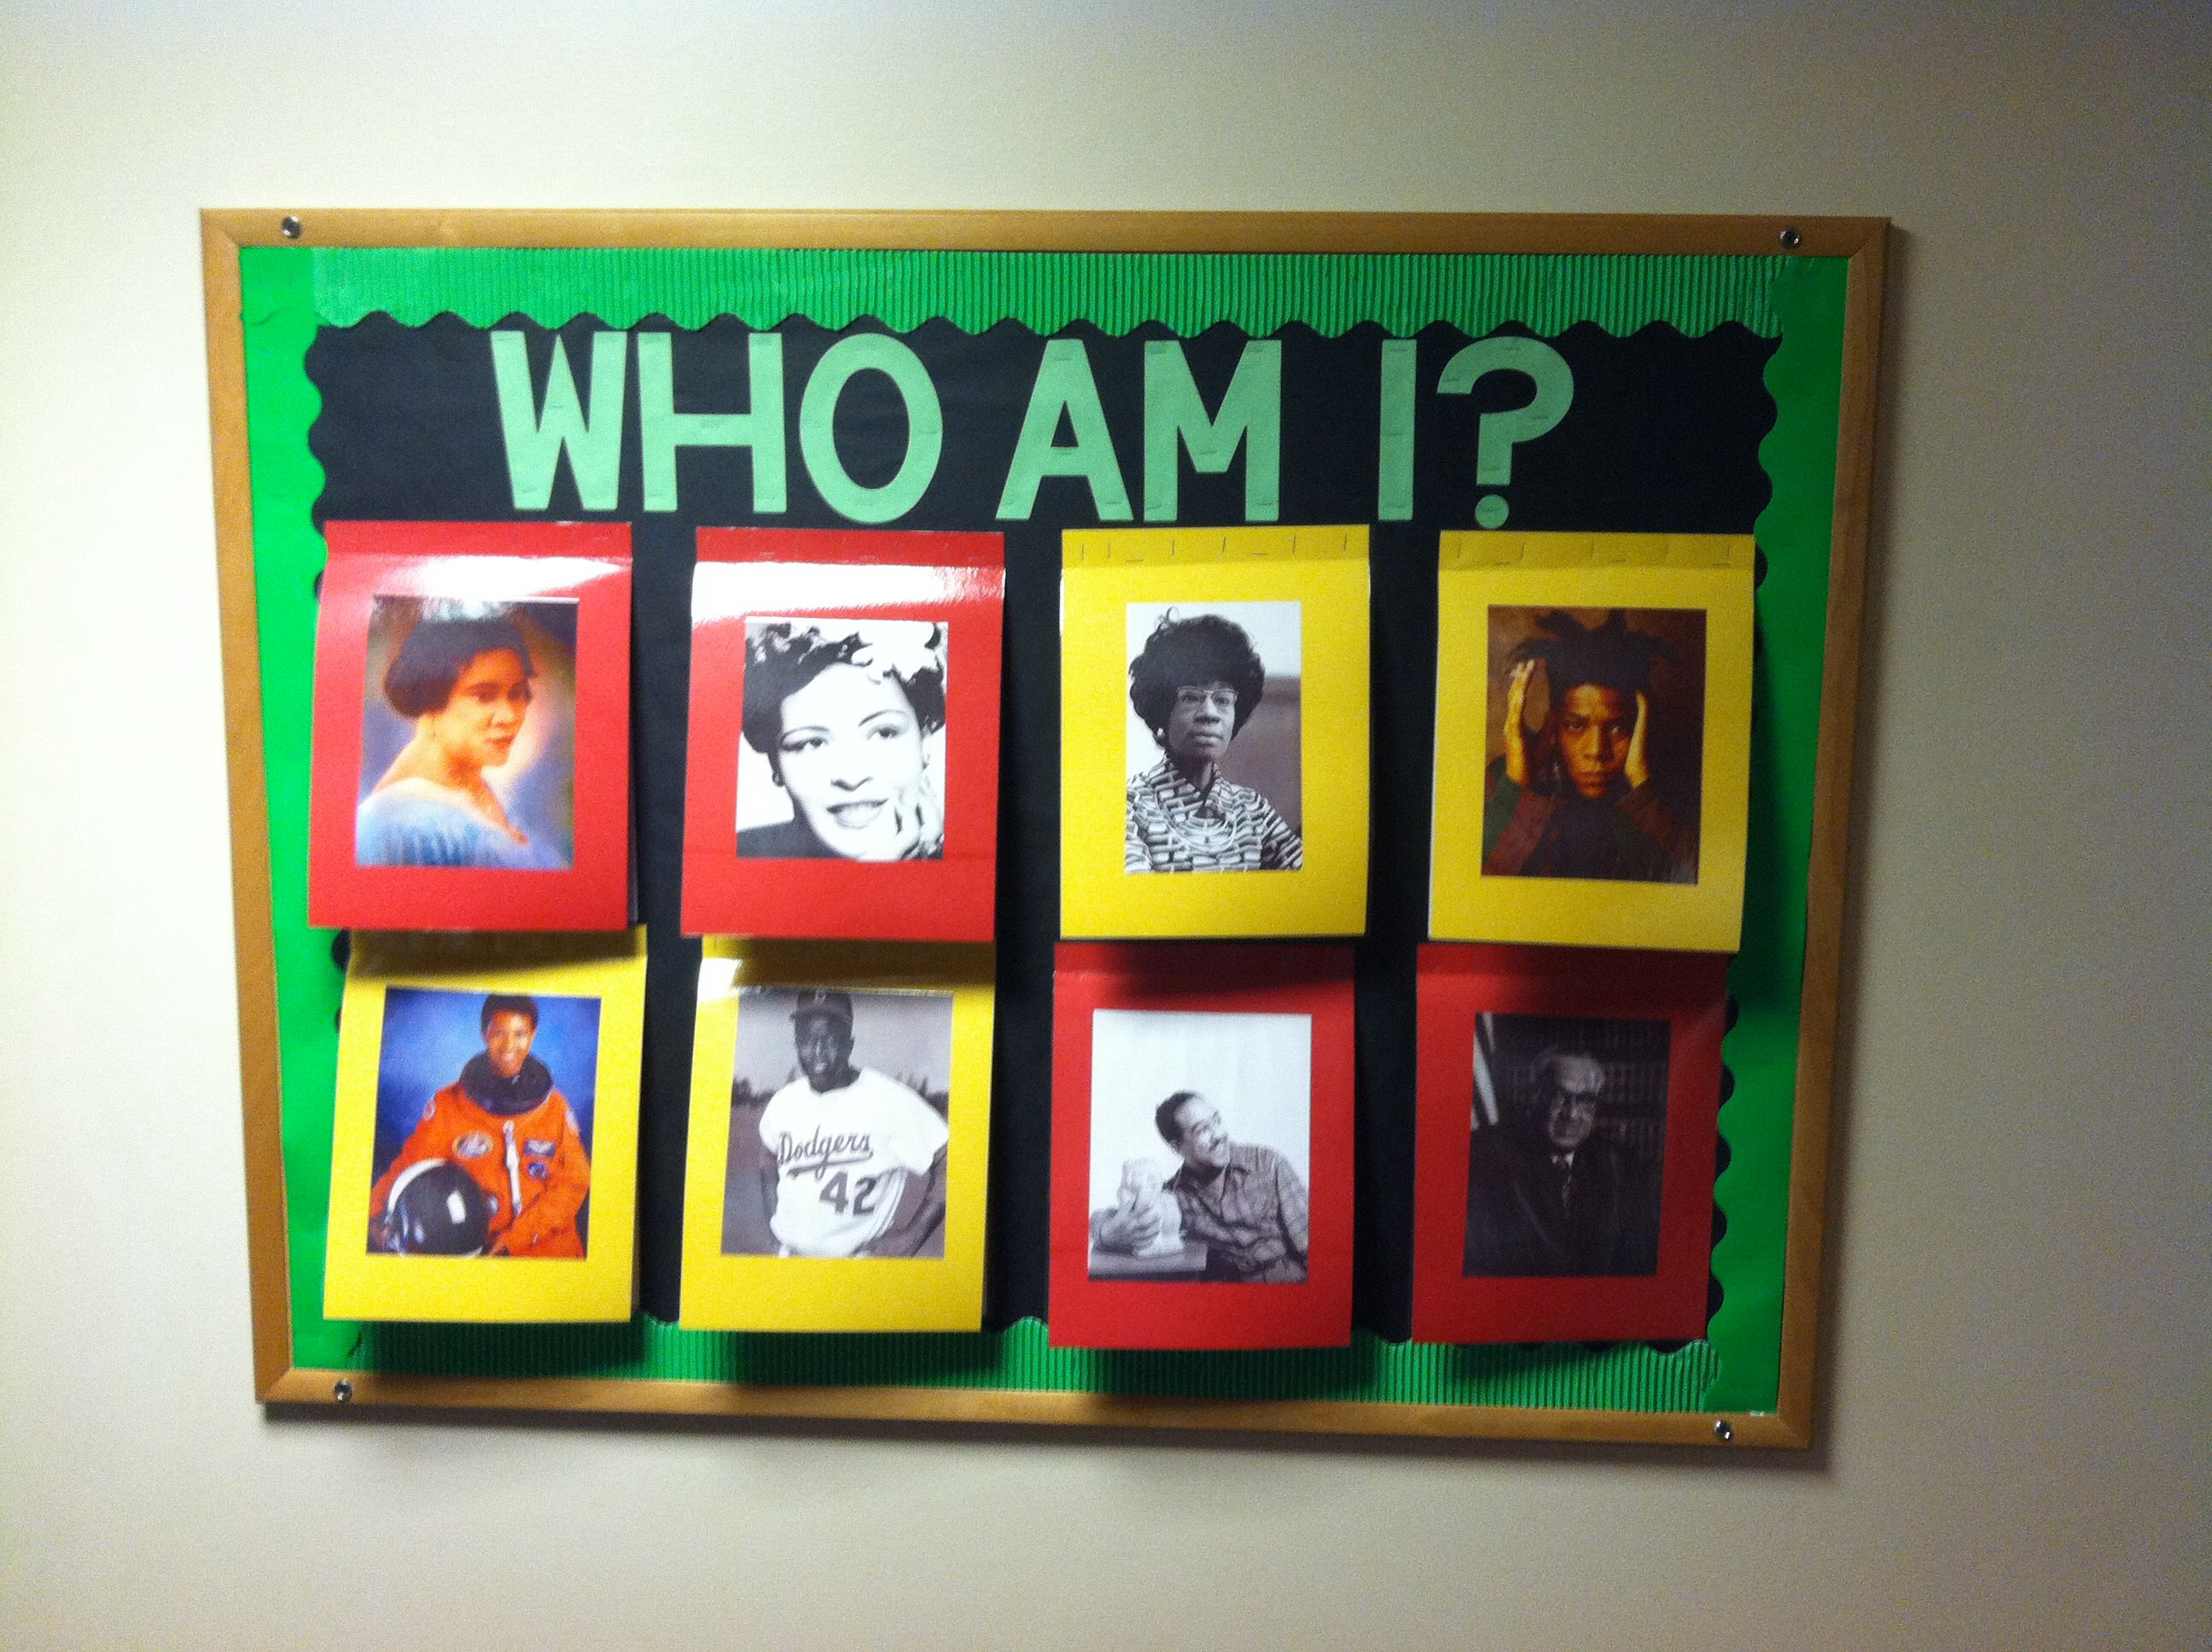 Black History Month Bulletin Board Pictures Flip Up To Reveal The Name And Facts About The